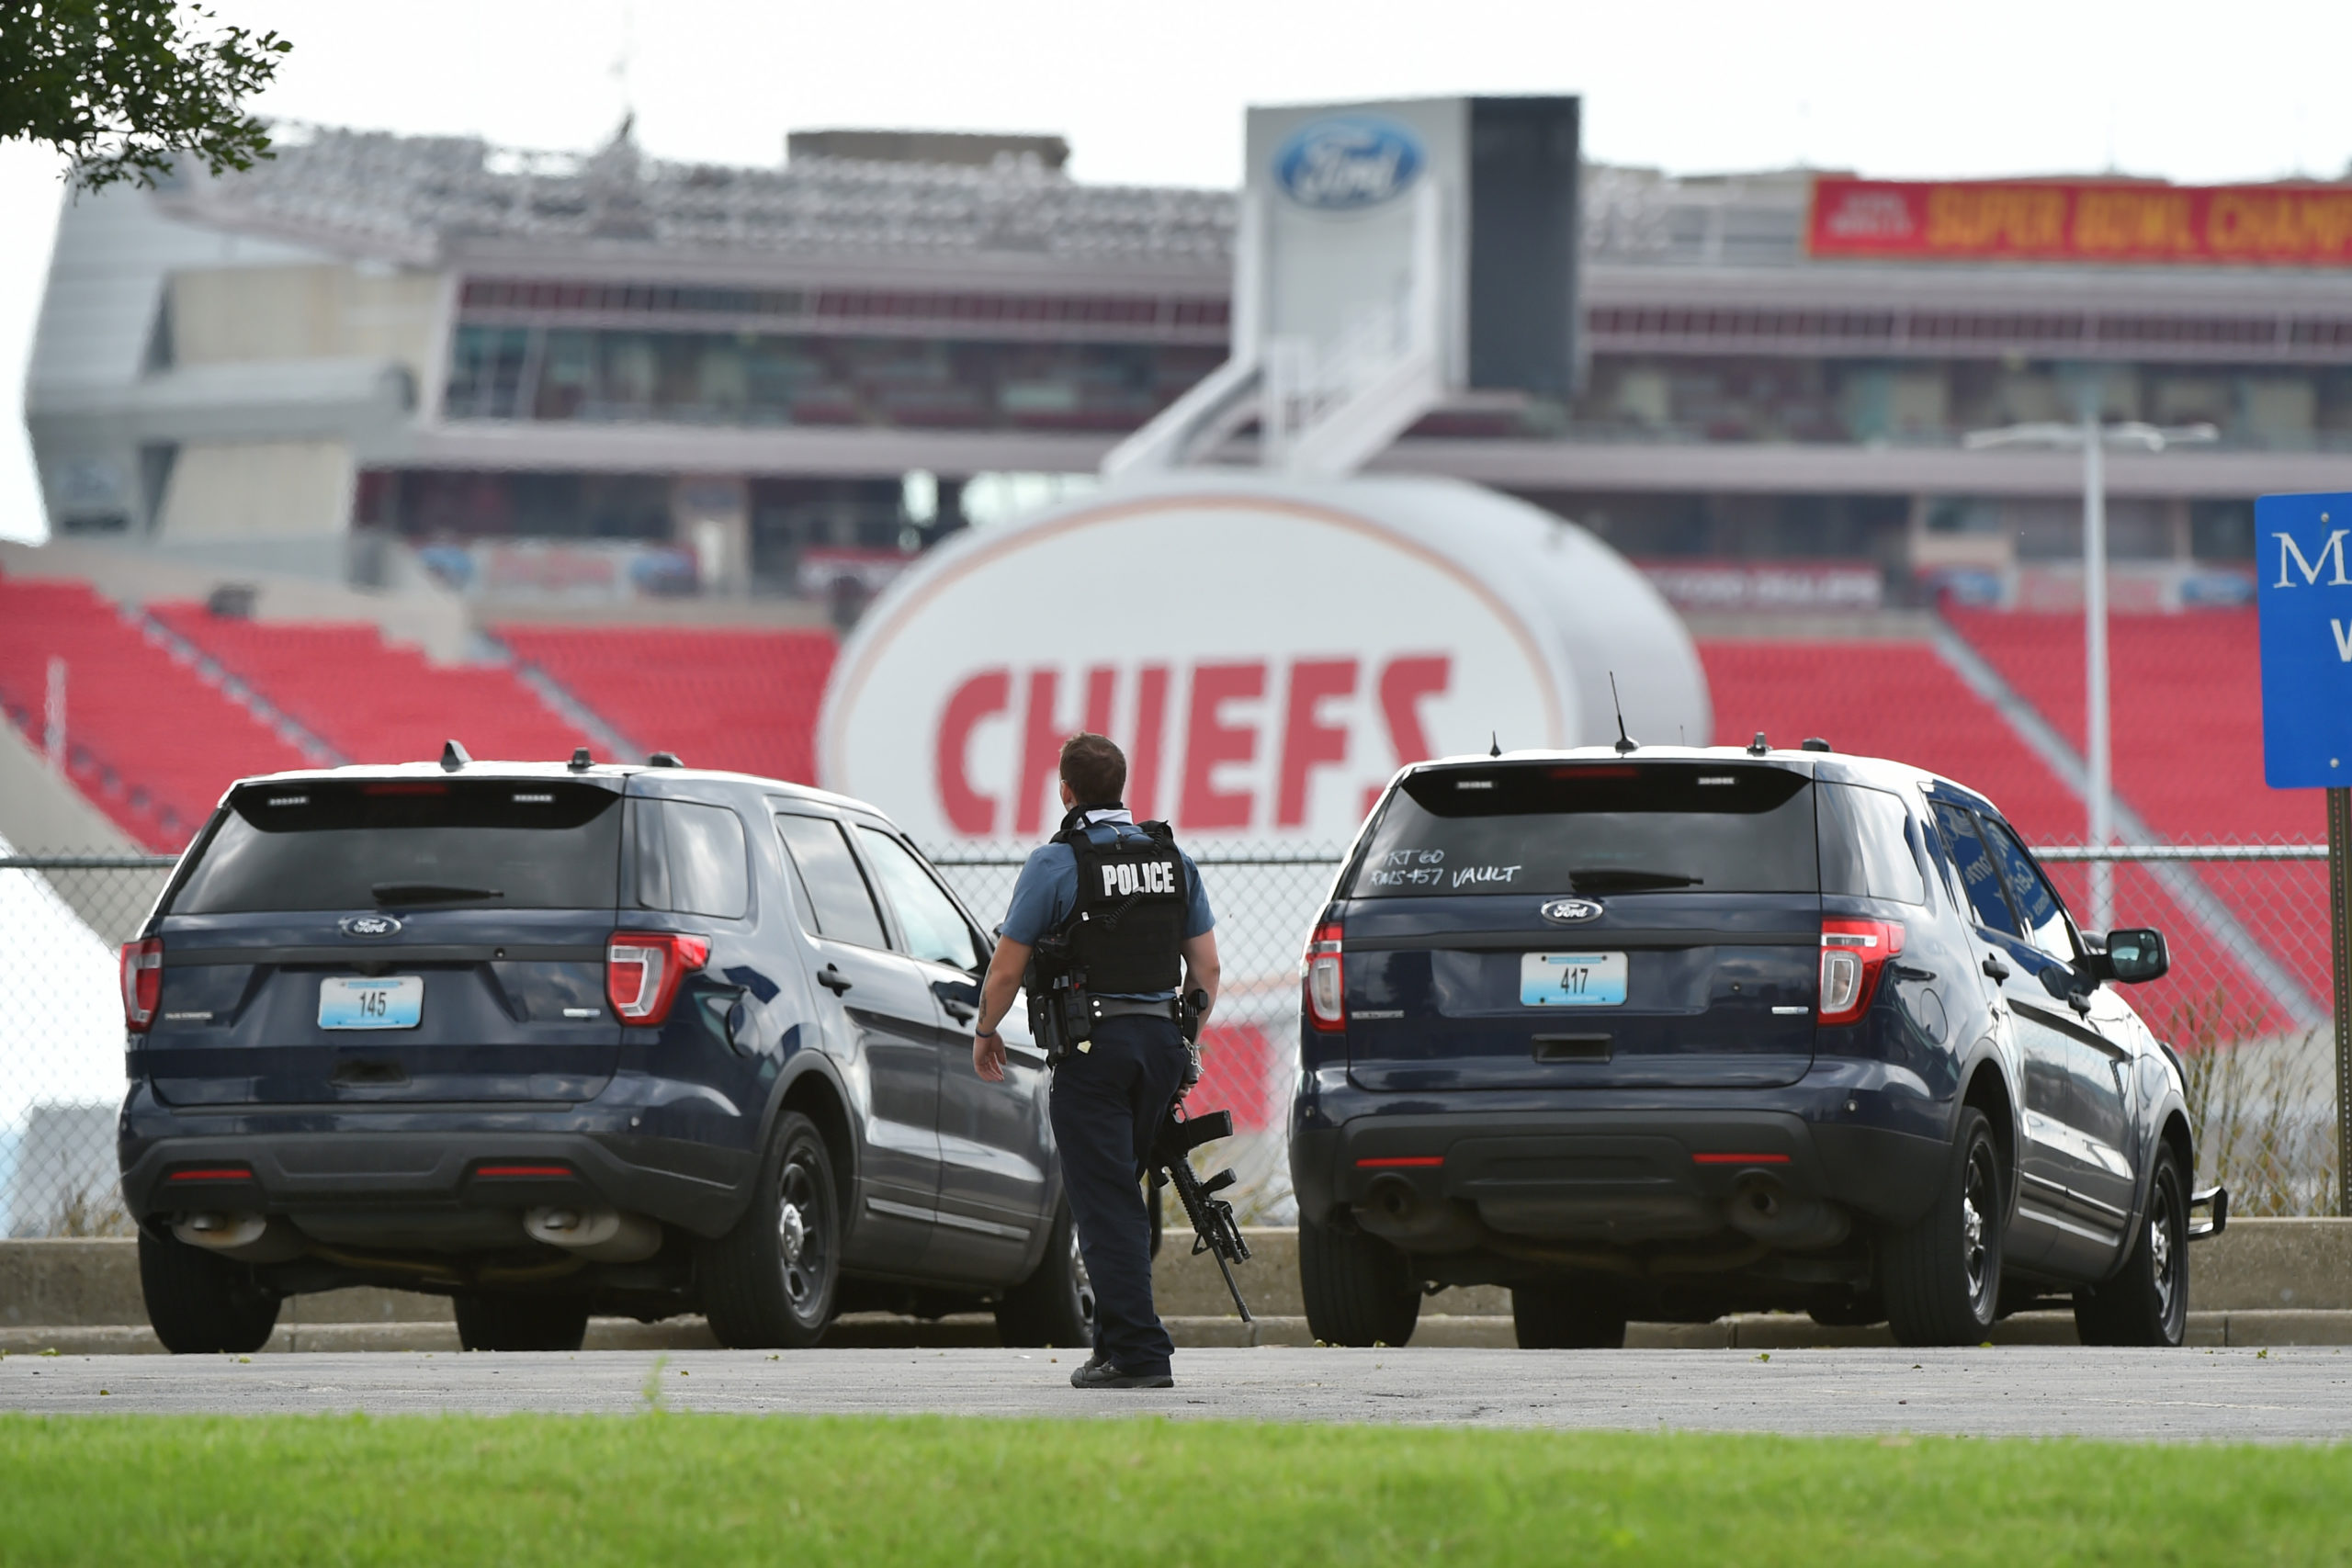 KANSAS CITY, MISSOURI - SEPTEMBER 12: A member of the Jackson County Sheriff's Emergency Response Team walks along the perimeter of the Truman Sports Complex as police are involved in a standoff with gunman at the complex on September 12, 2020 in Kansas City, Missouri. The Pittsburgh Pirates and Kansas City Royals are scheduled to play at Kauffman Stadium which is located within the sporting complex. (Ed Zurga/Getty Images)